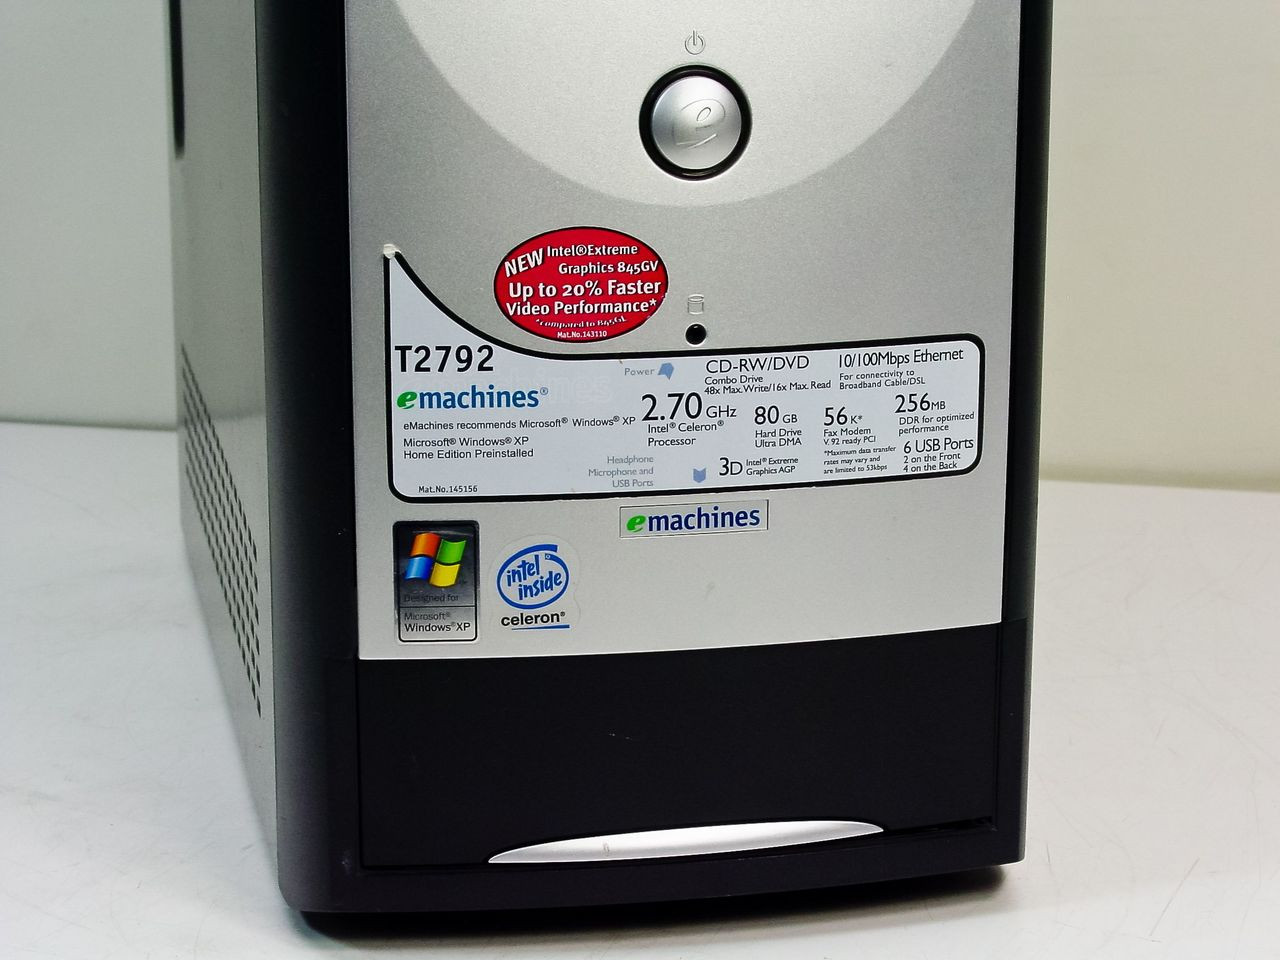 EMACHINES T2792 WINDOWS XP DRIVER DOWNLOAD